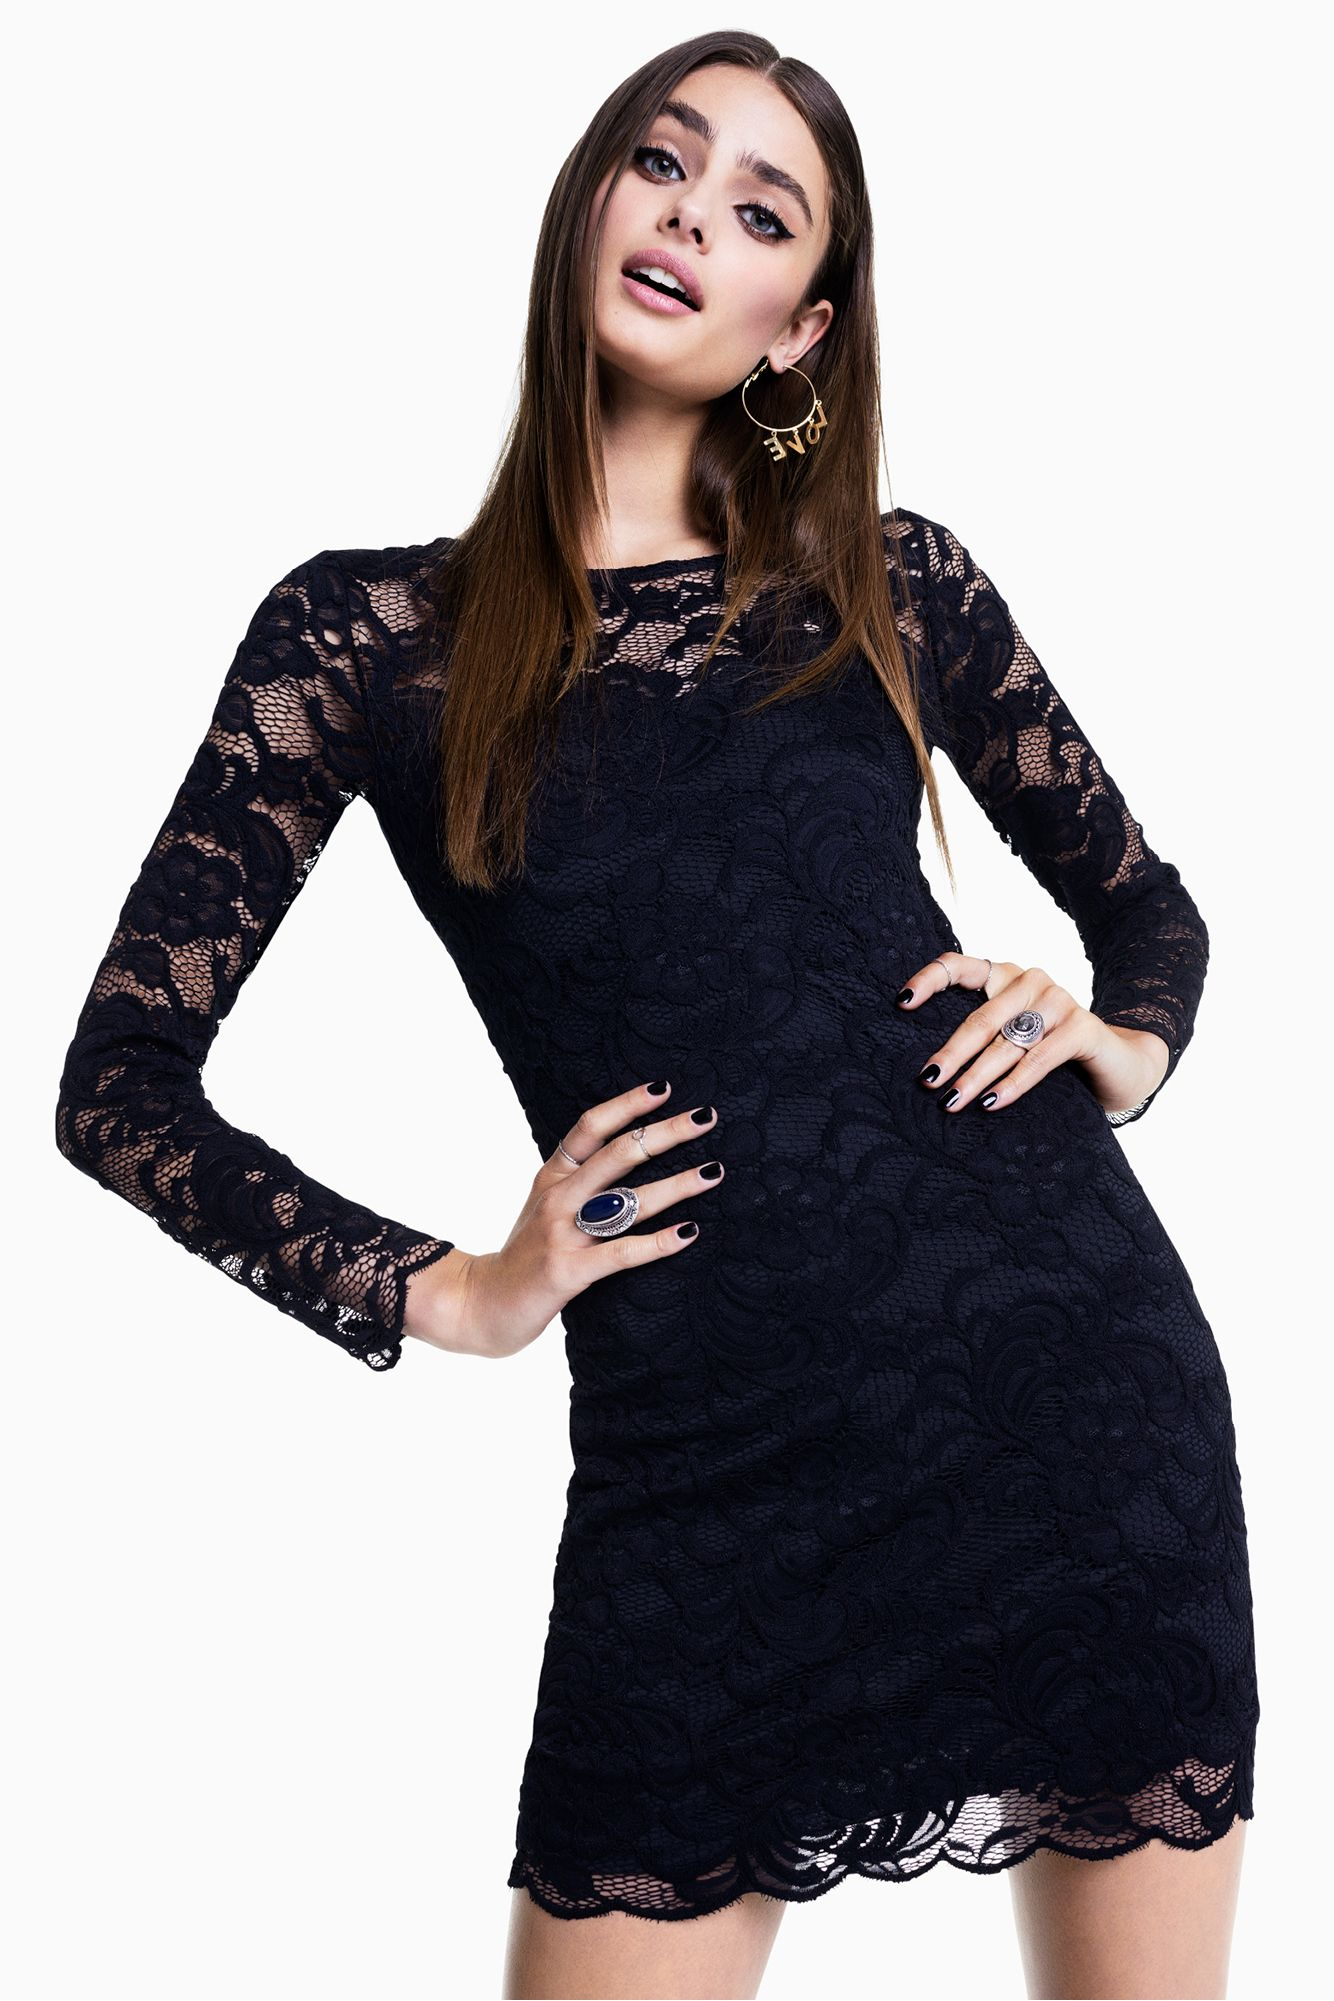 Little black lace dress with long, sheer sleeves. #HMDIVIDED